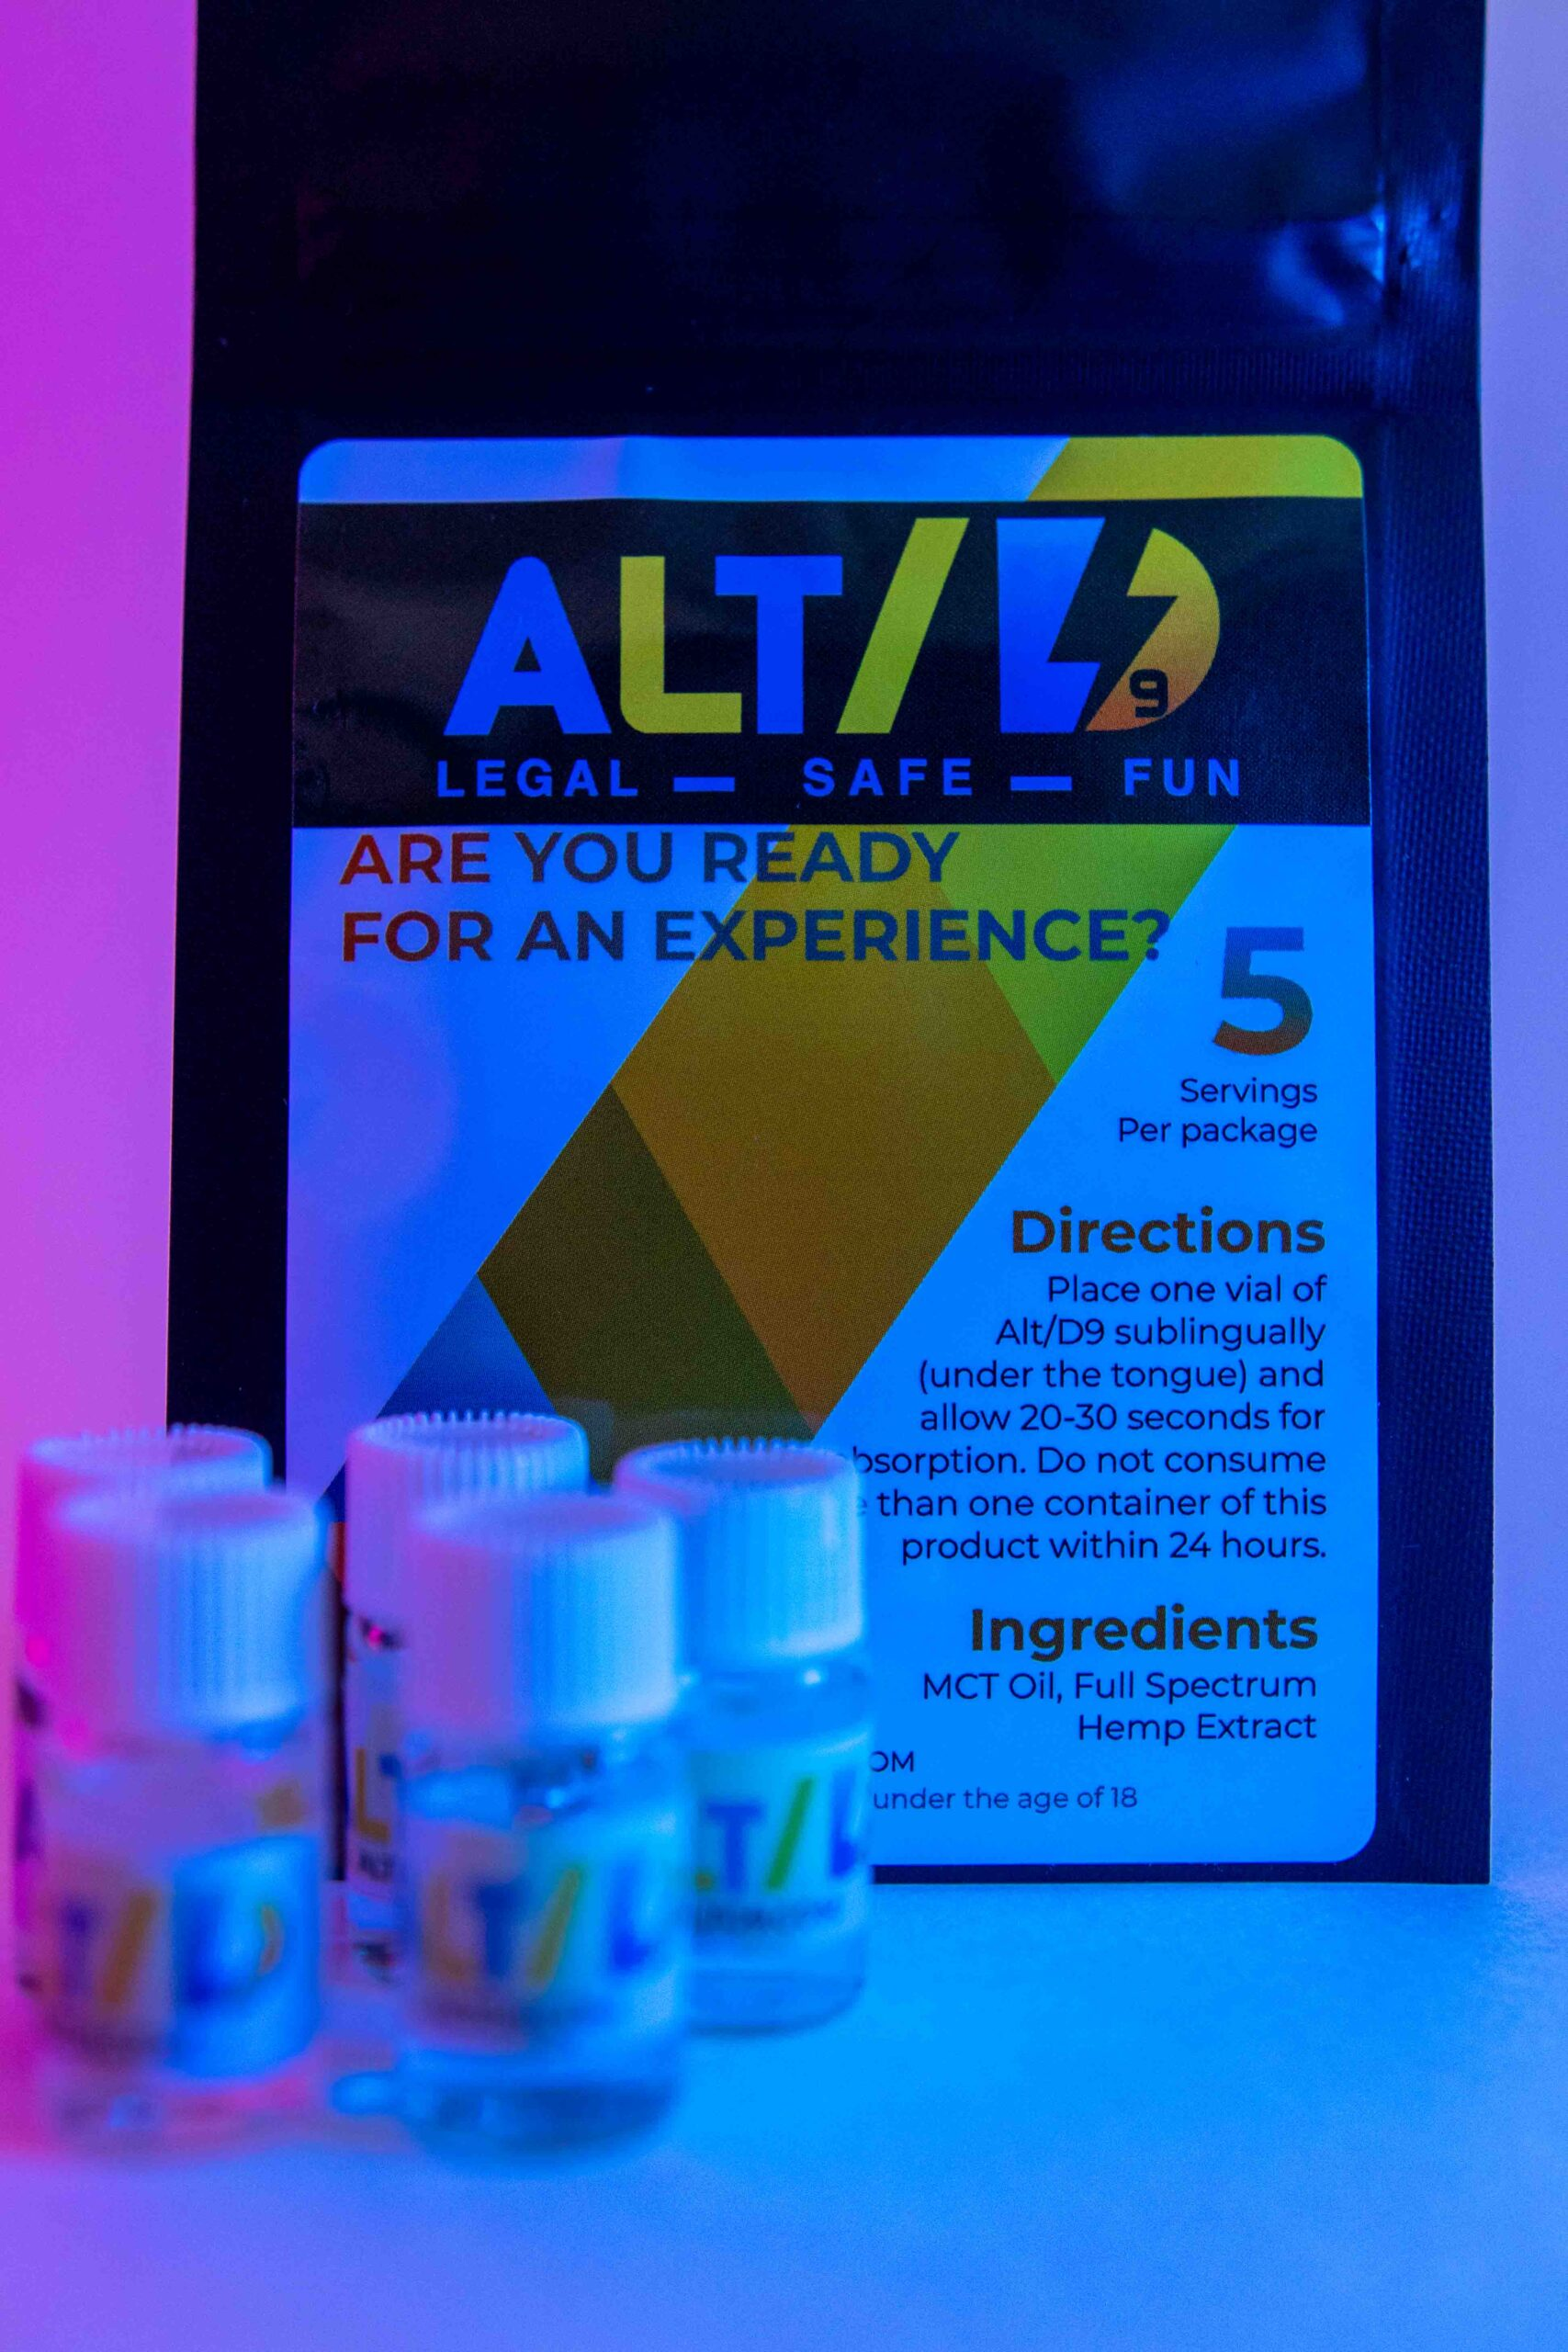 Altd9 - euphoria in a bottle - legal in anywhere that hemp is sold - www.altd9.com